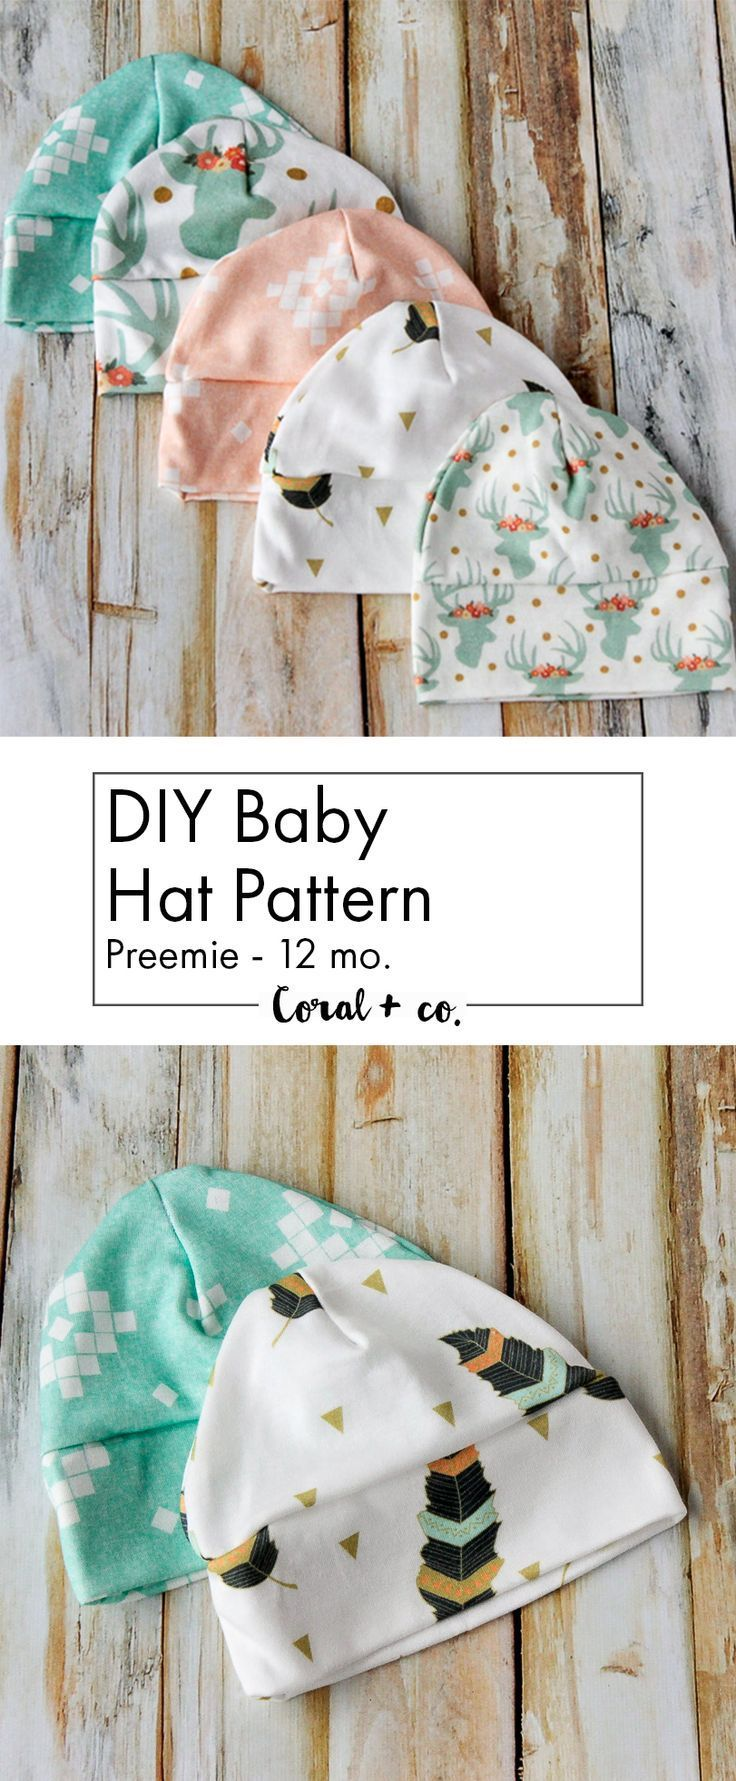 98 best Baby of Mine images on Pinterest | Sewing for kids, Baby ...